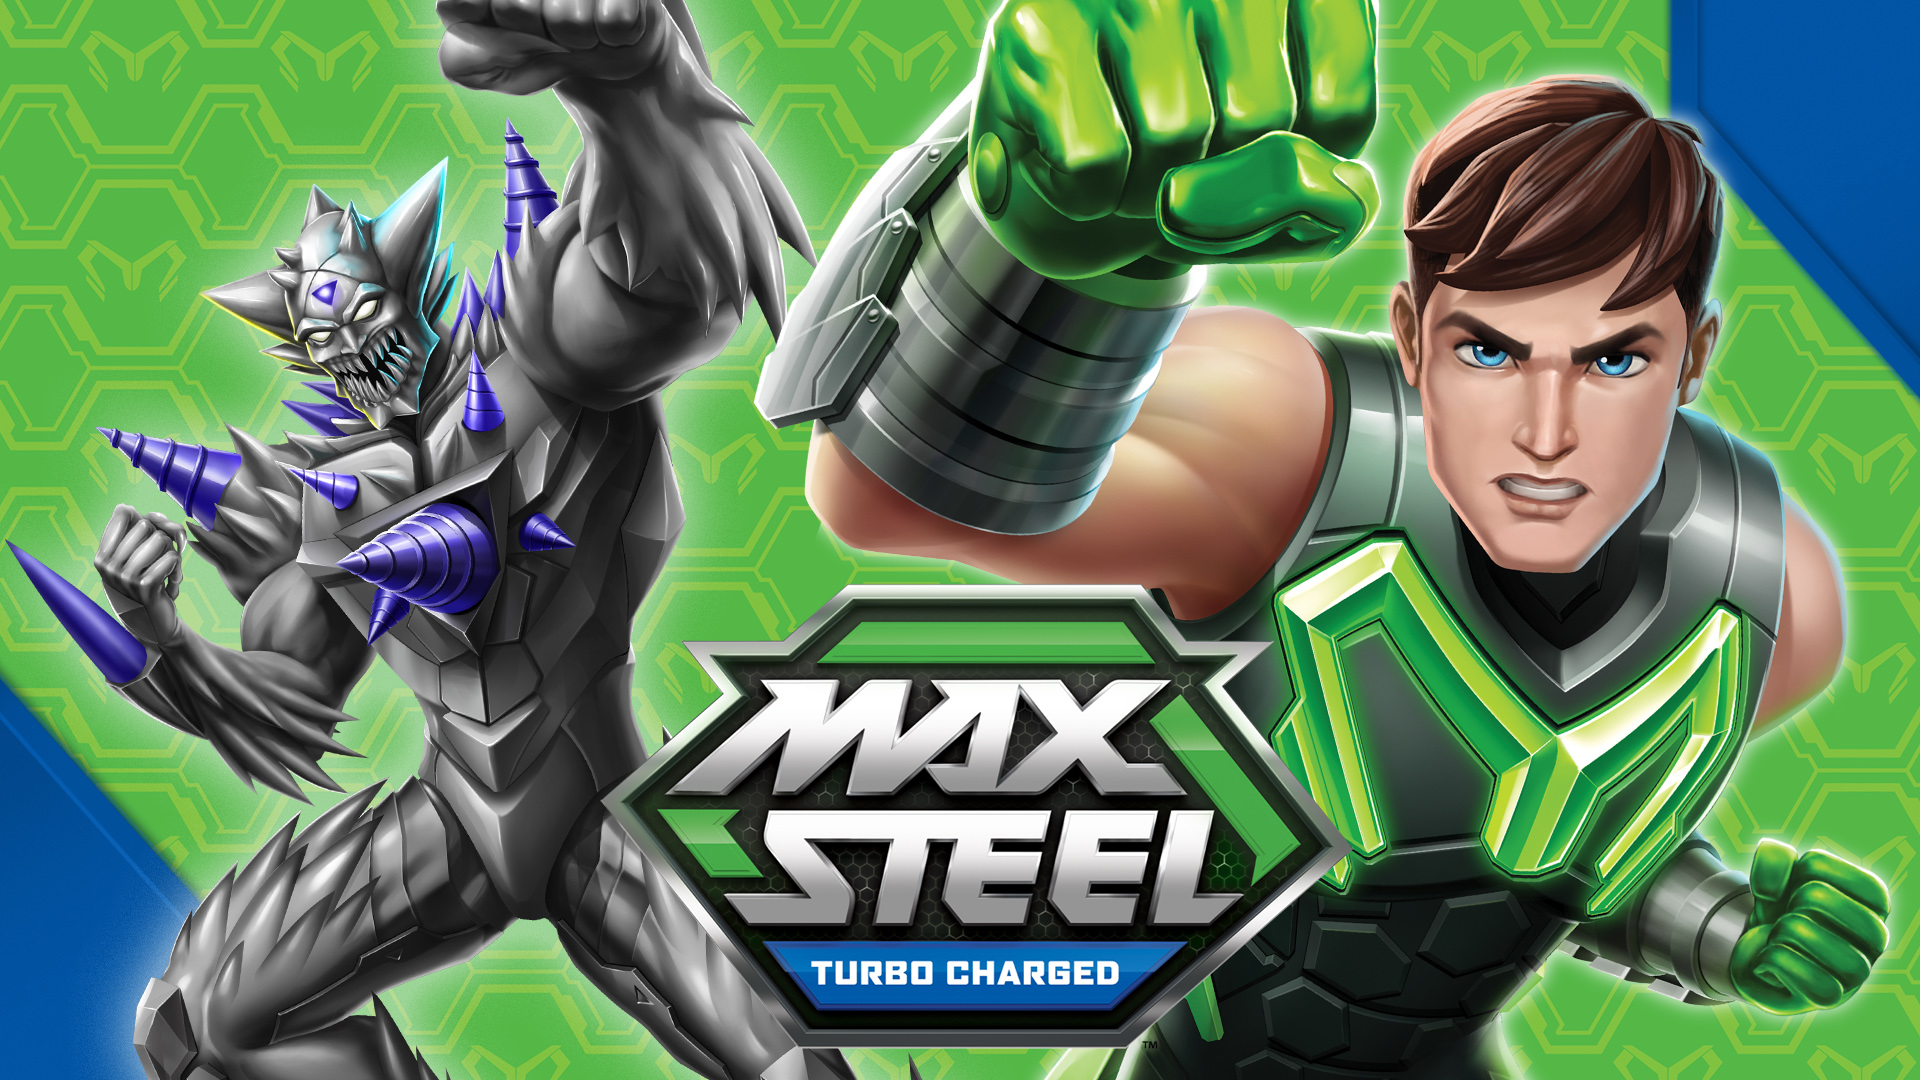 Max Steel Turbo Charged